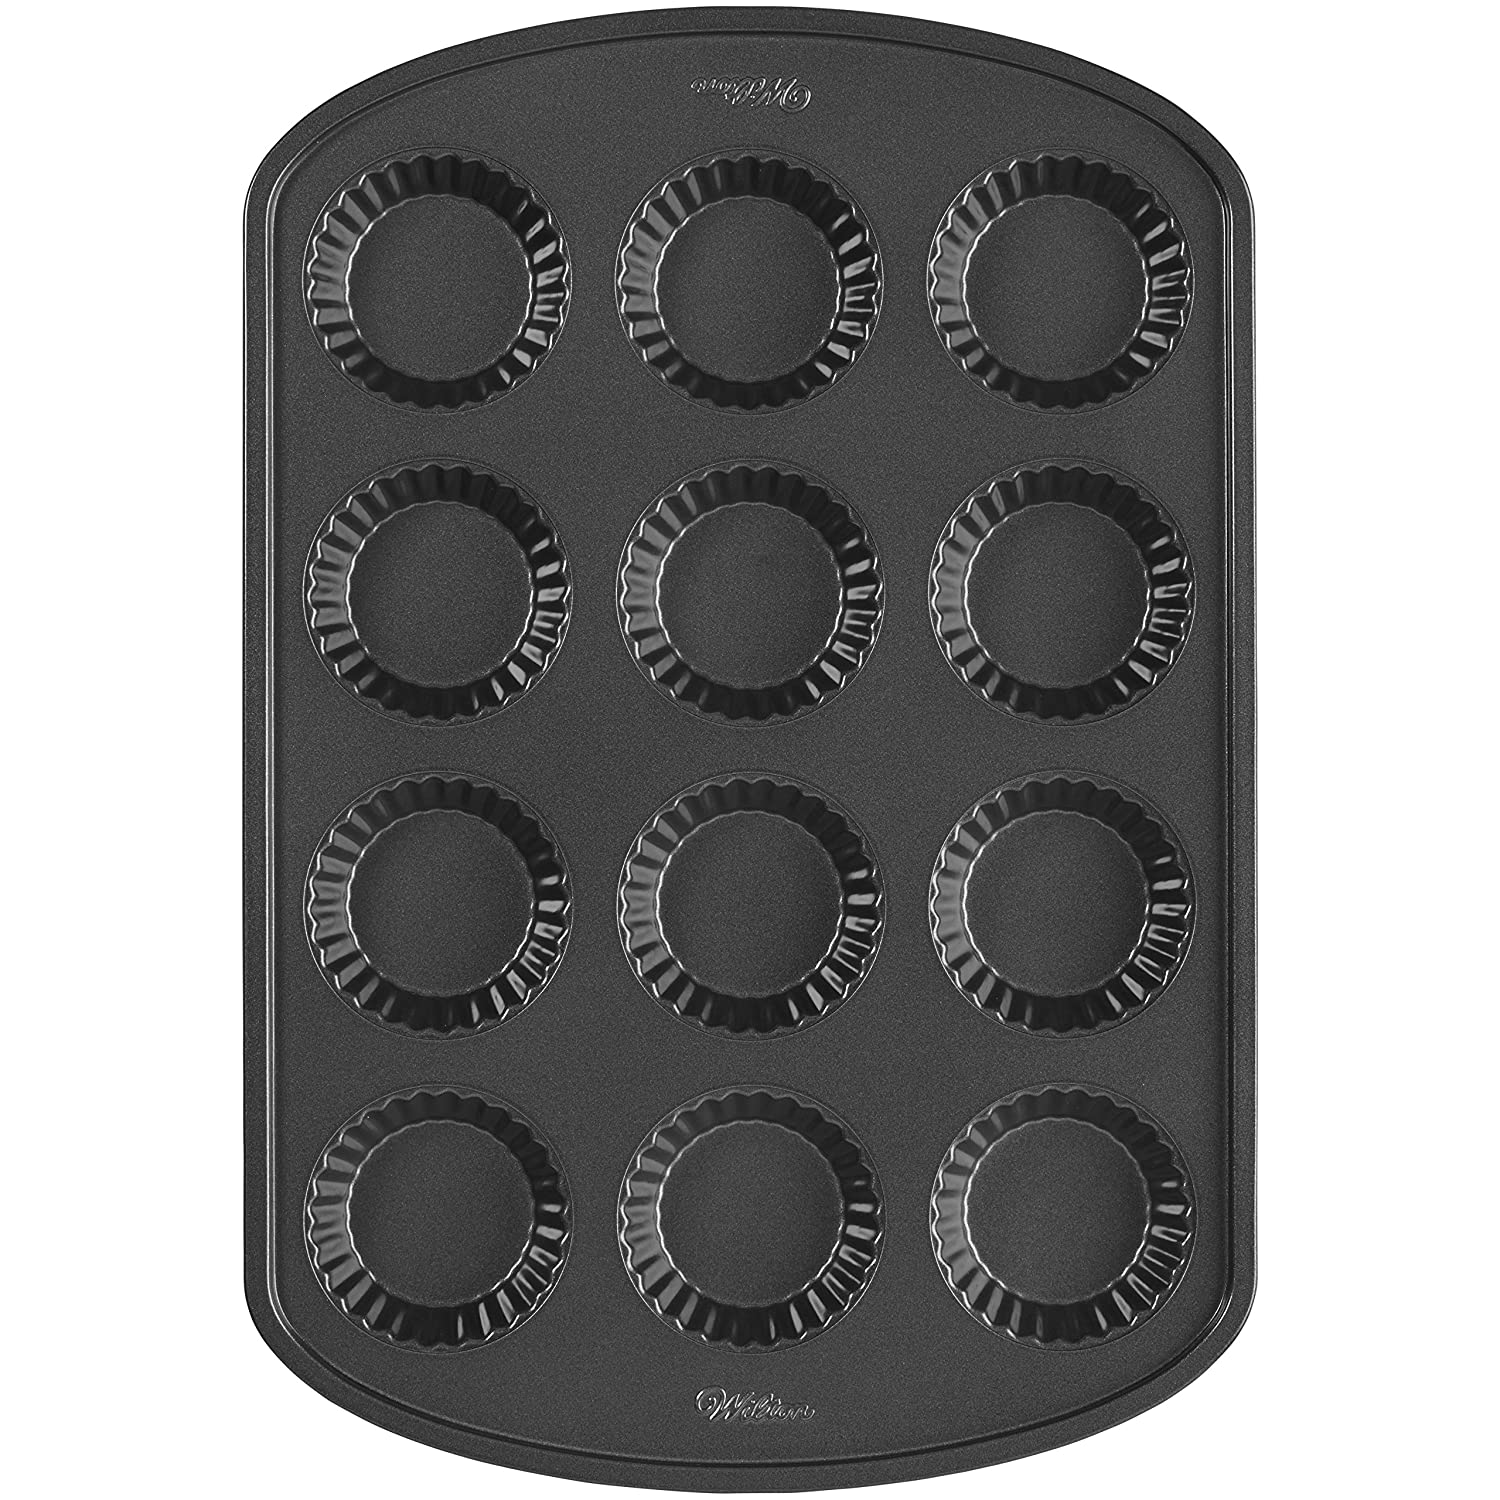 Wilton 2105-0089 12-Cavity Nonstick Tart Pan, Mini